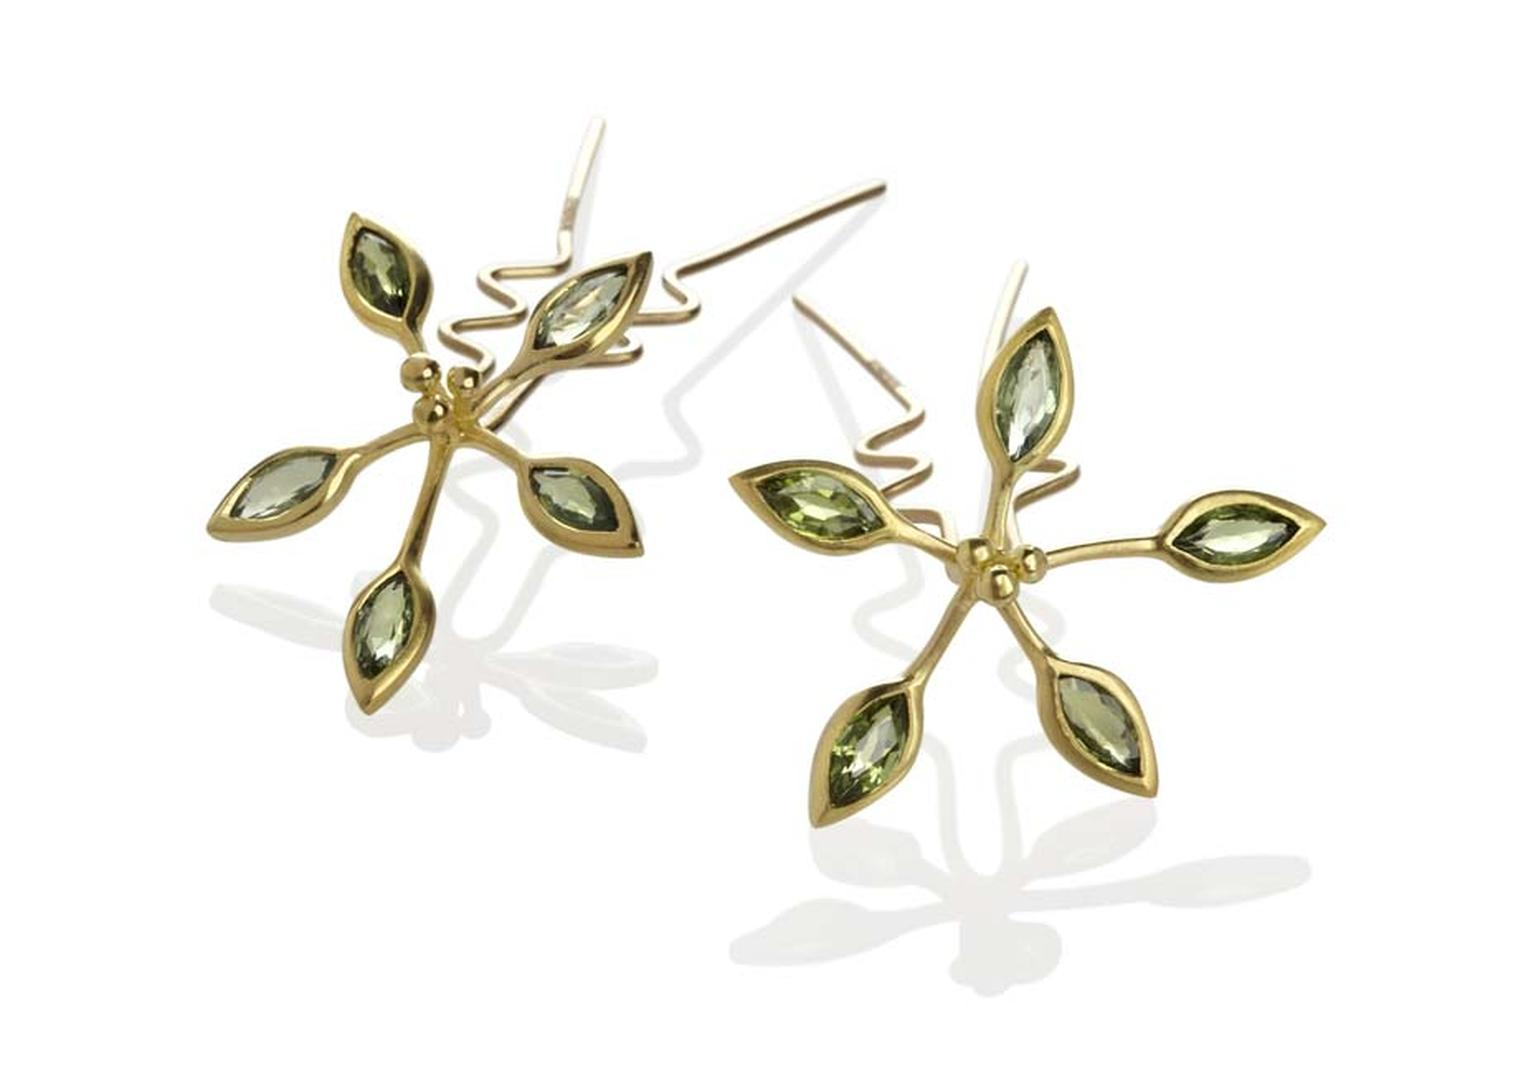 Jo Thorne Passion Flower gold hairpins set with green sapphires.